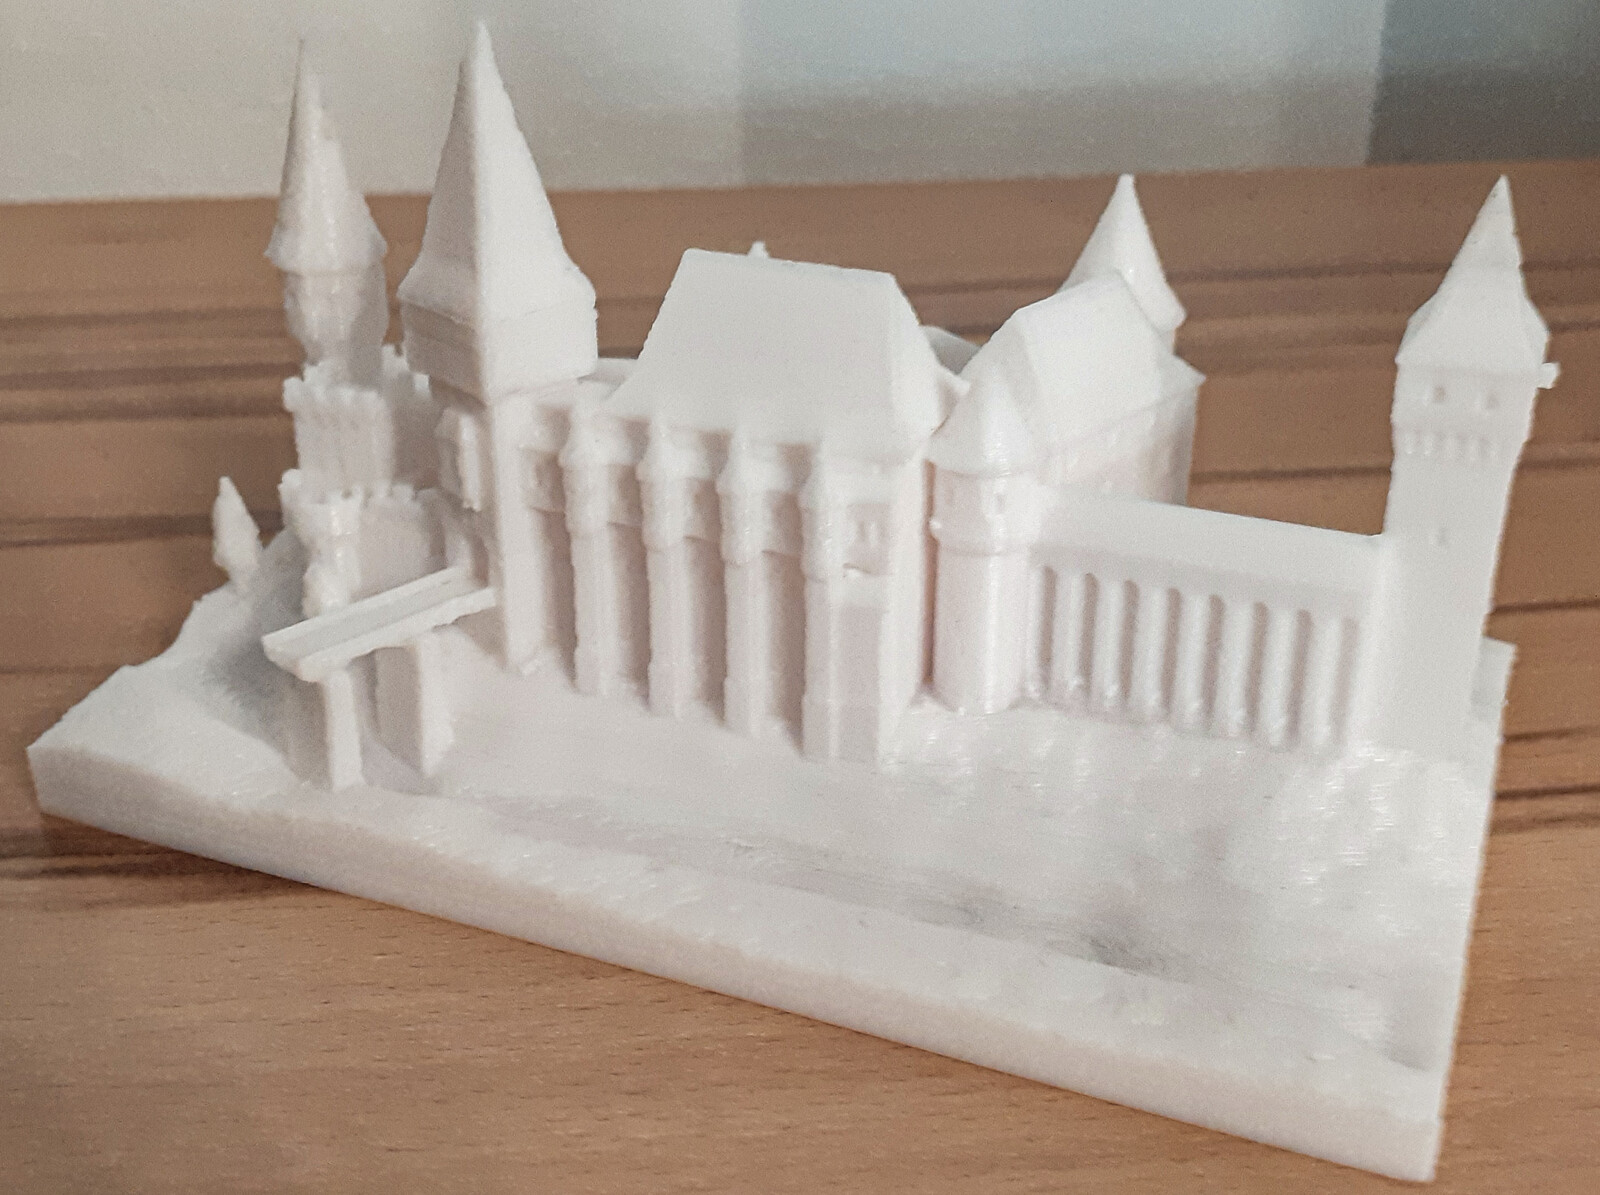 Corvin Castle https://www.thingiverse.com/thing:962299